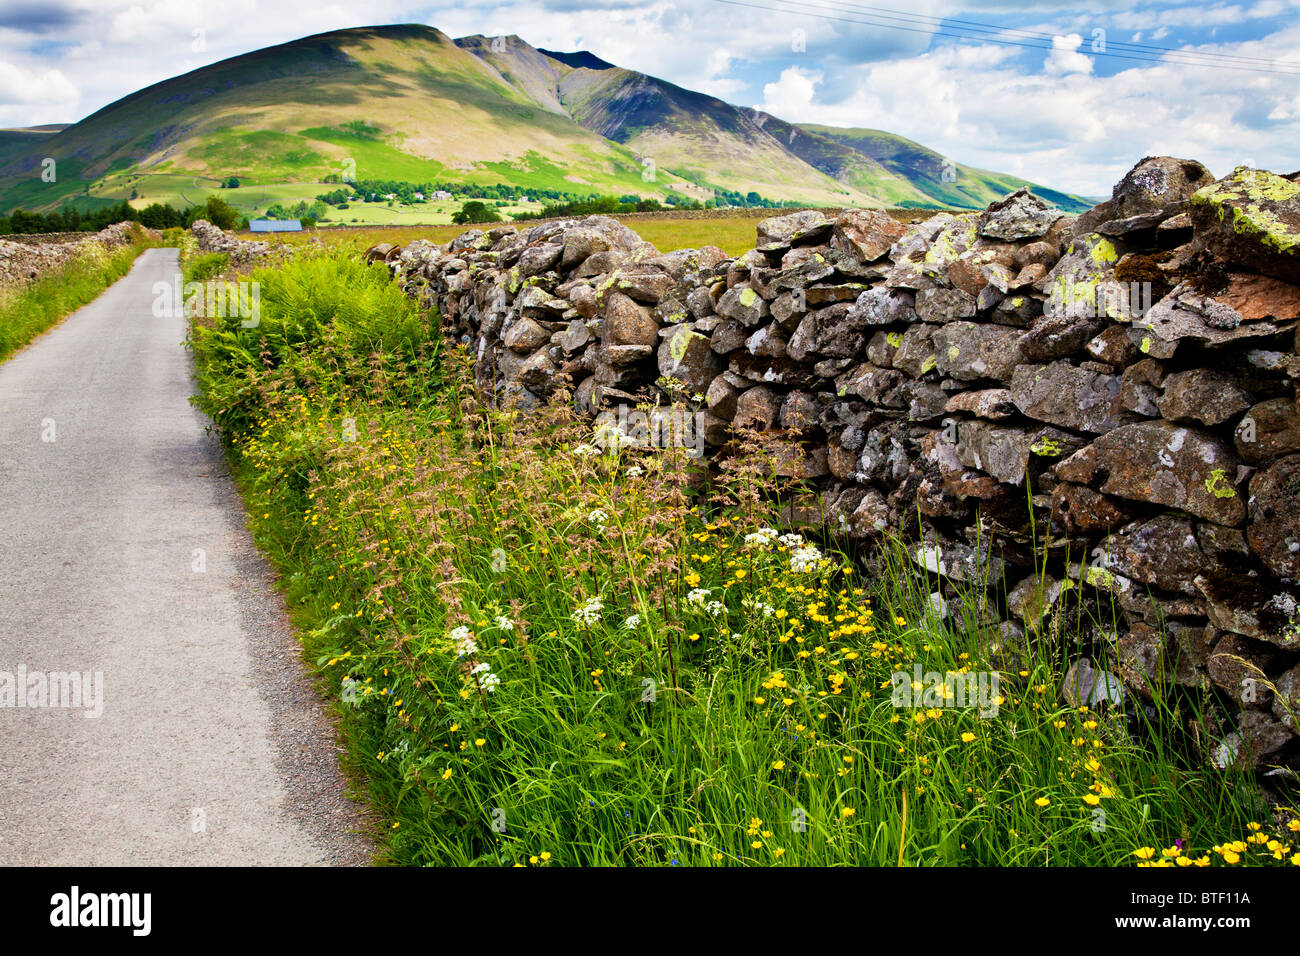 A dry stone wall and wildflowers near Castlerigg in the Lake District National Park, Cumbria, England, UK - Stock Image